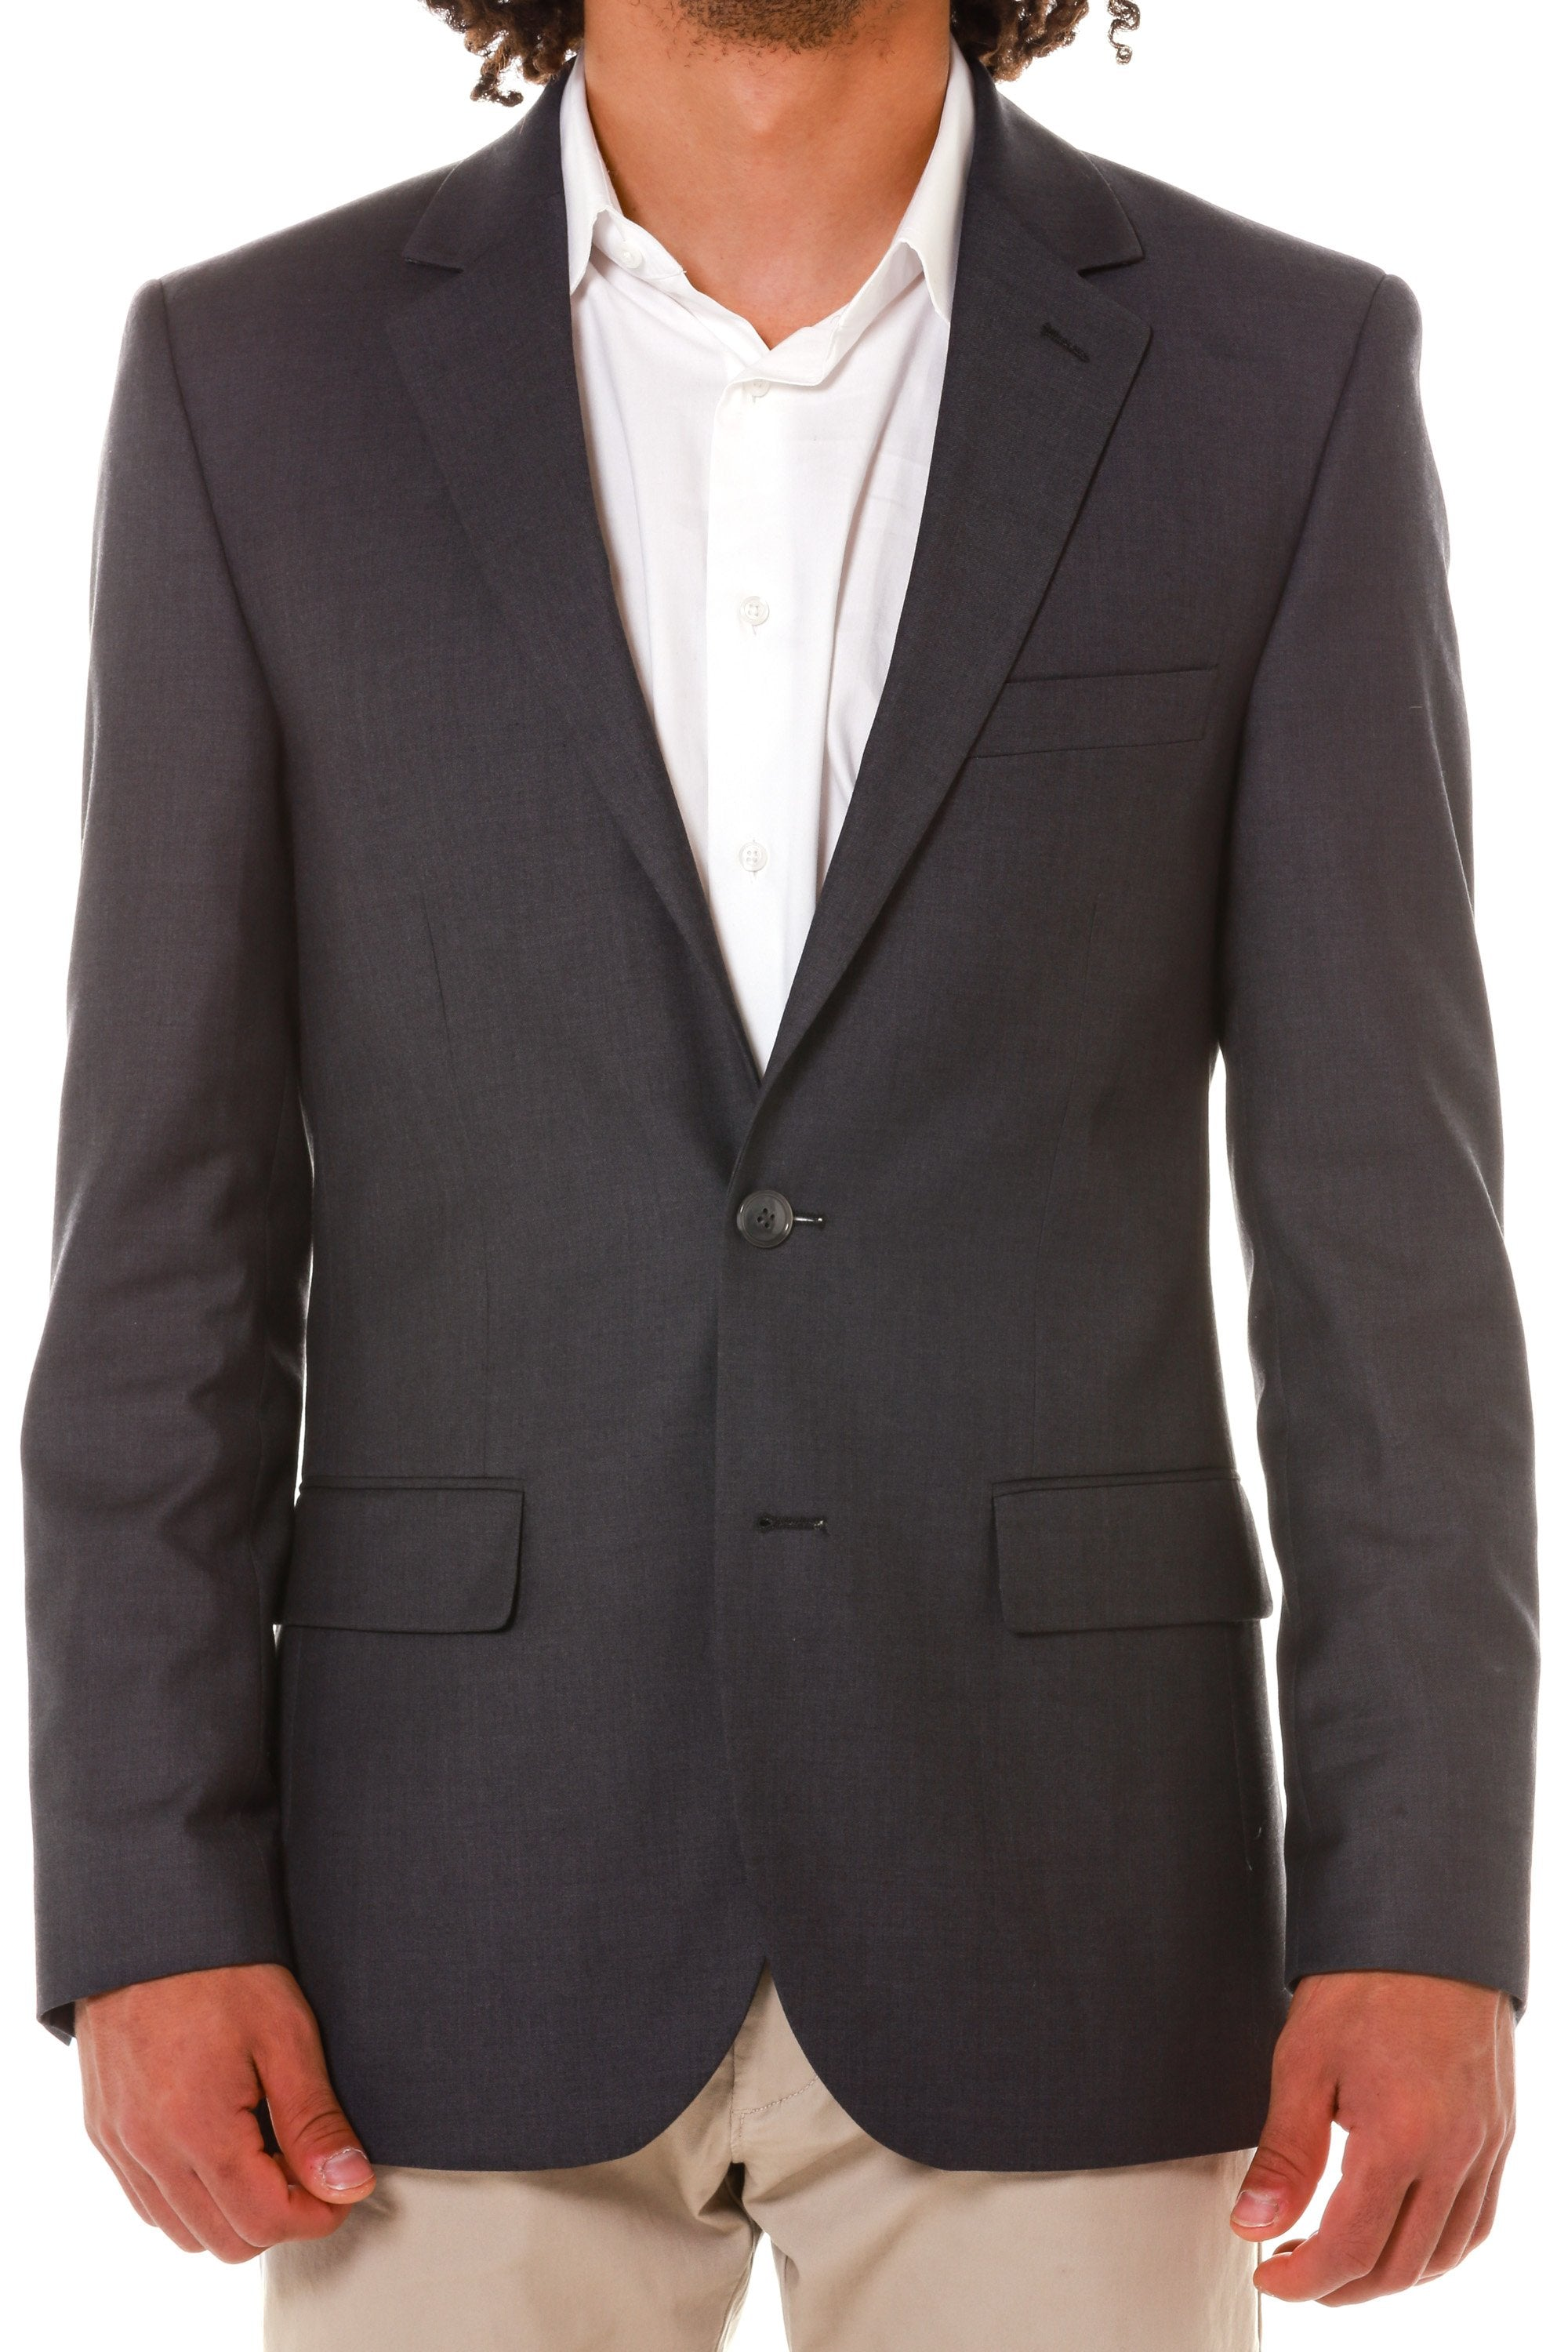 Grey mens collegiate blazer